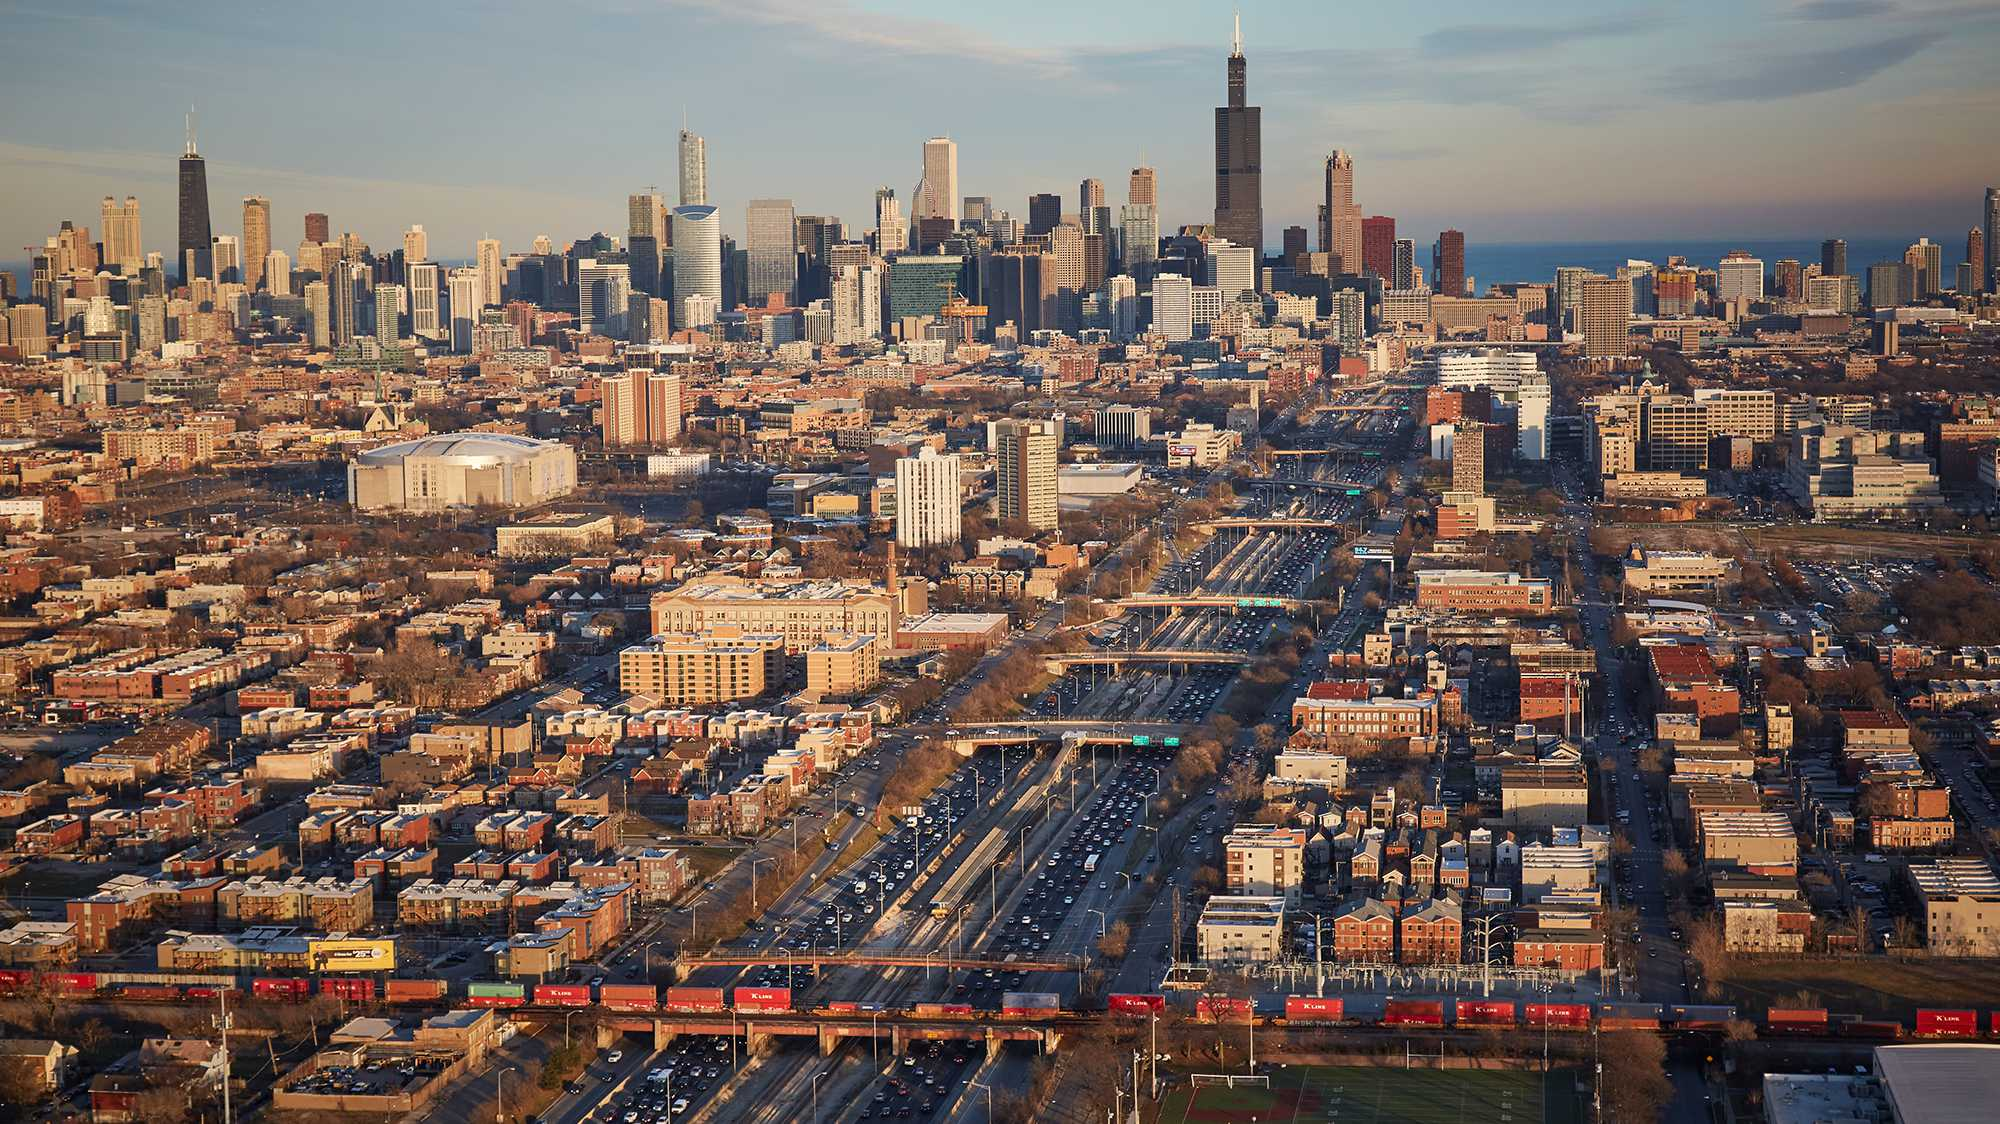 Chicago region transportation system from above.